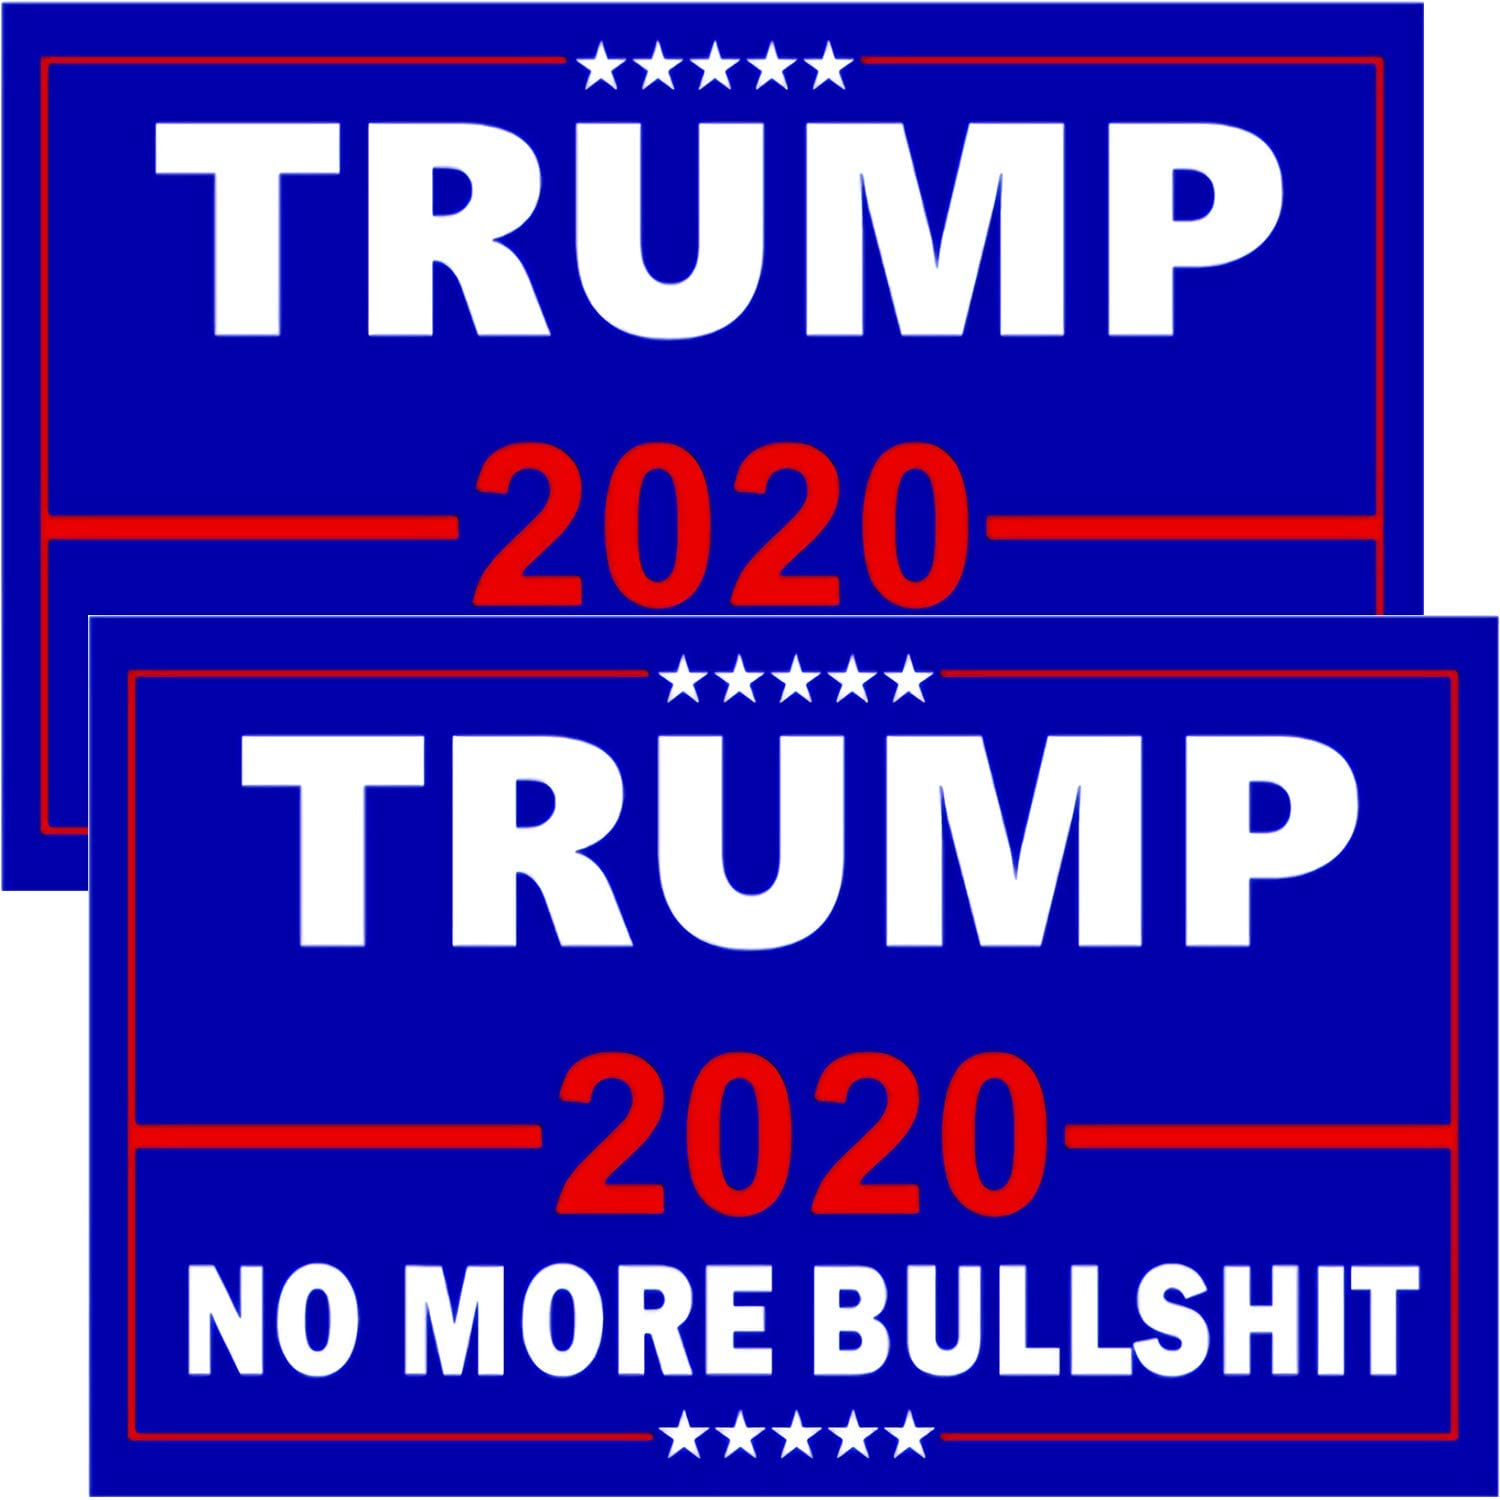 Top Spring Trump 2020 Flags, 2Pcs President Donald Trump Flags 3x5 Outdoor Double Sided Confederate Flag,Vivid Color&UV Fade Resistant with Grommets Double Stitched for Front Yard,Garden&Outdoor Use